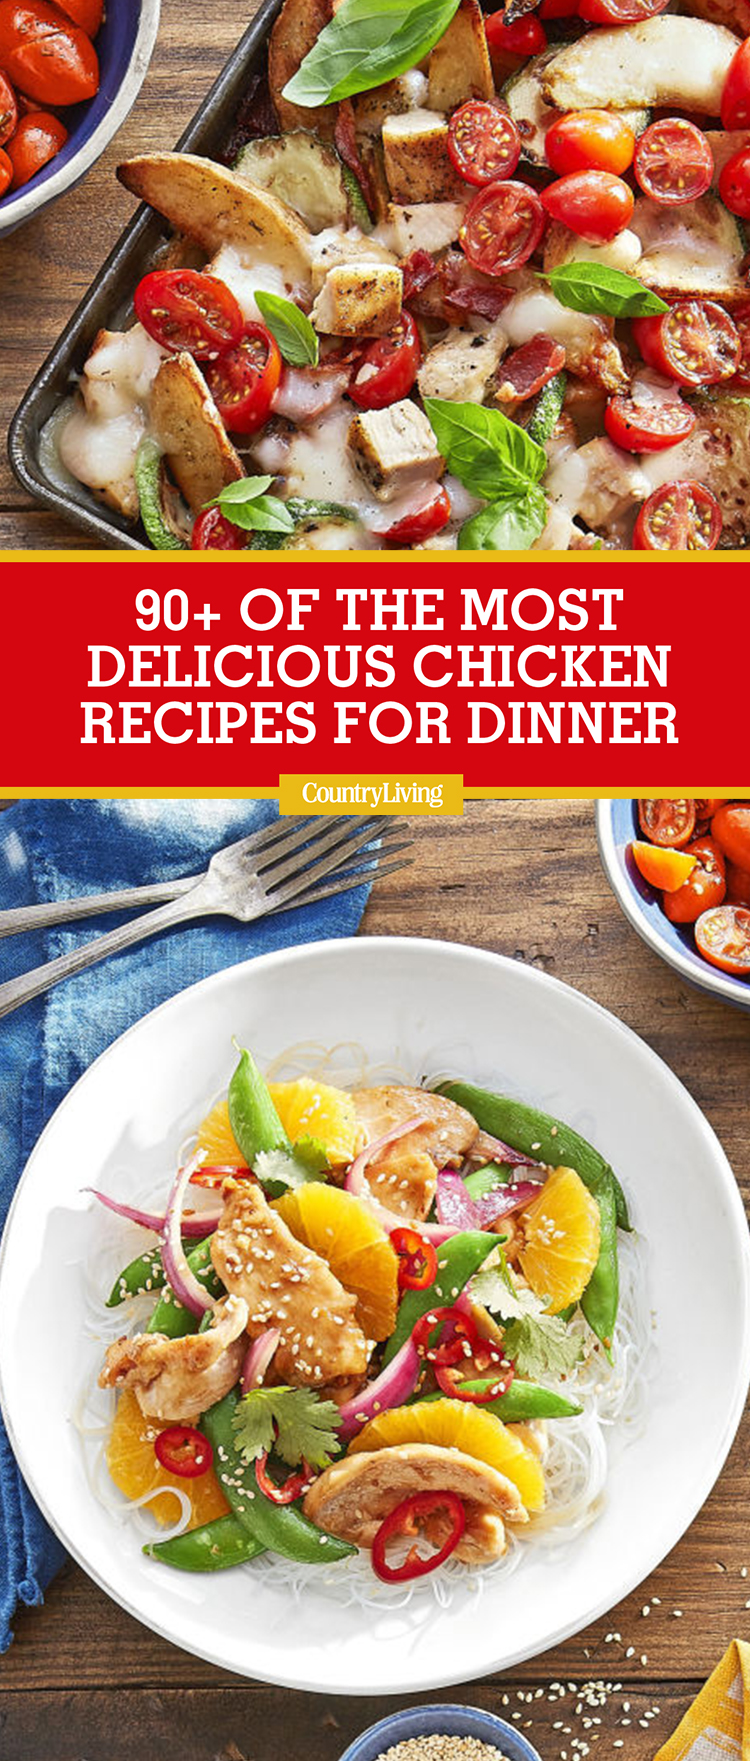 chicken recipes dinner country living easy food dishes recipe dinners